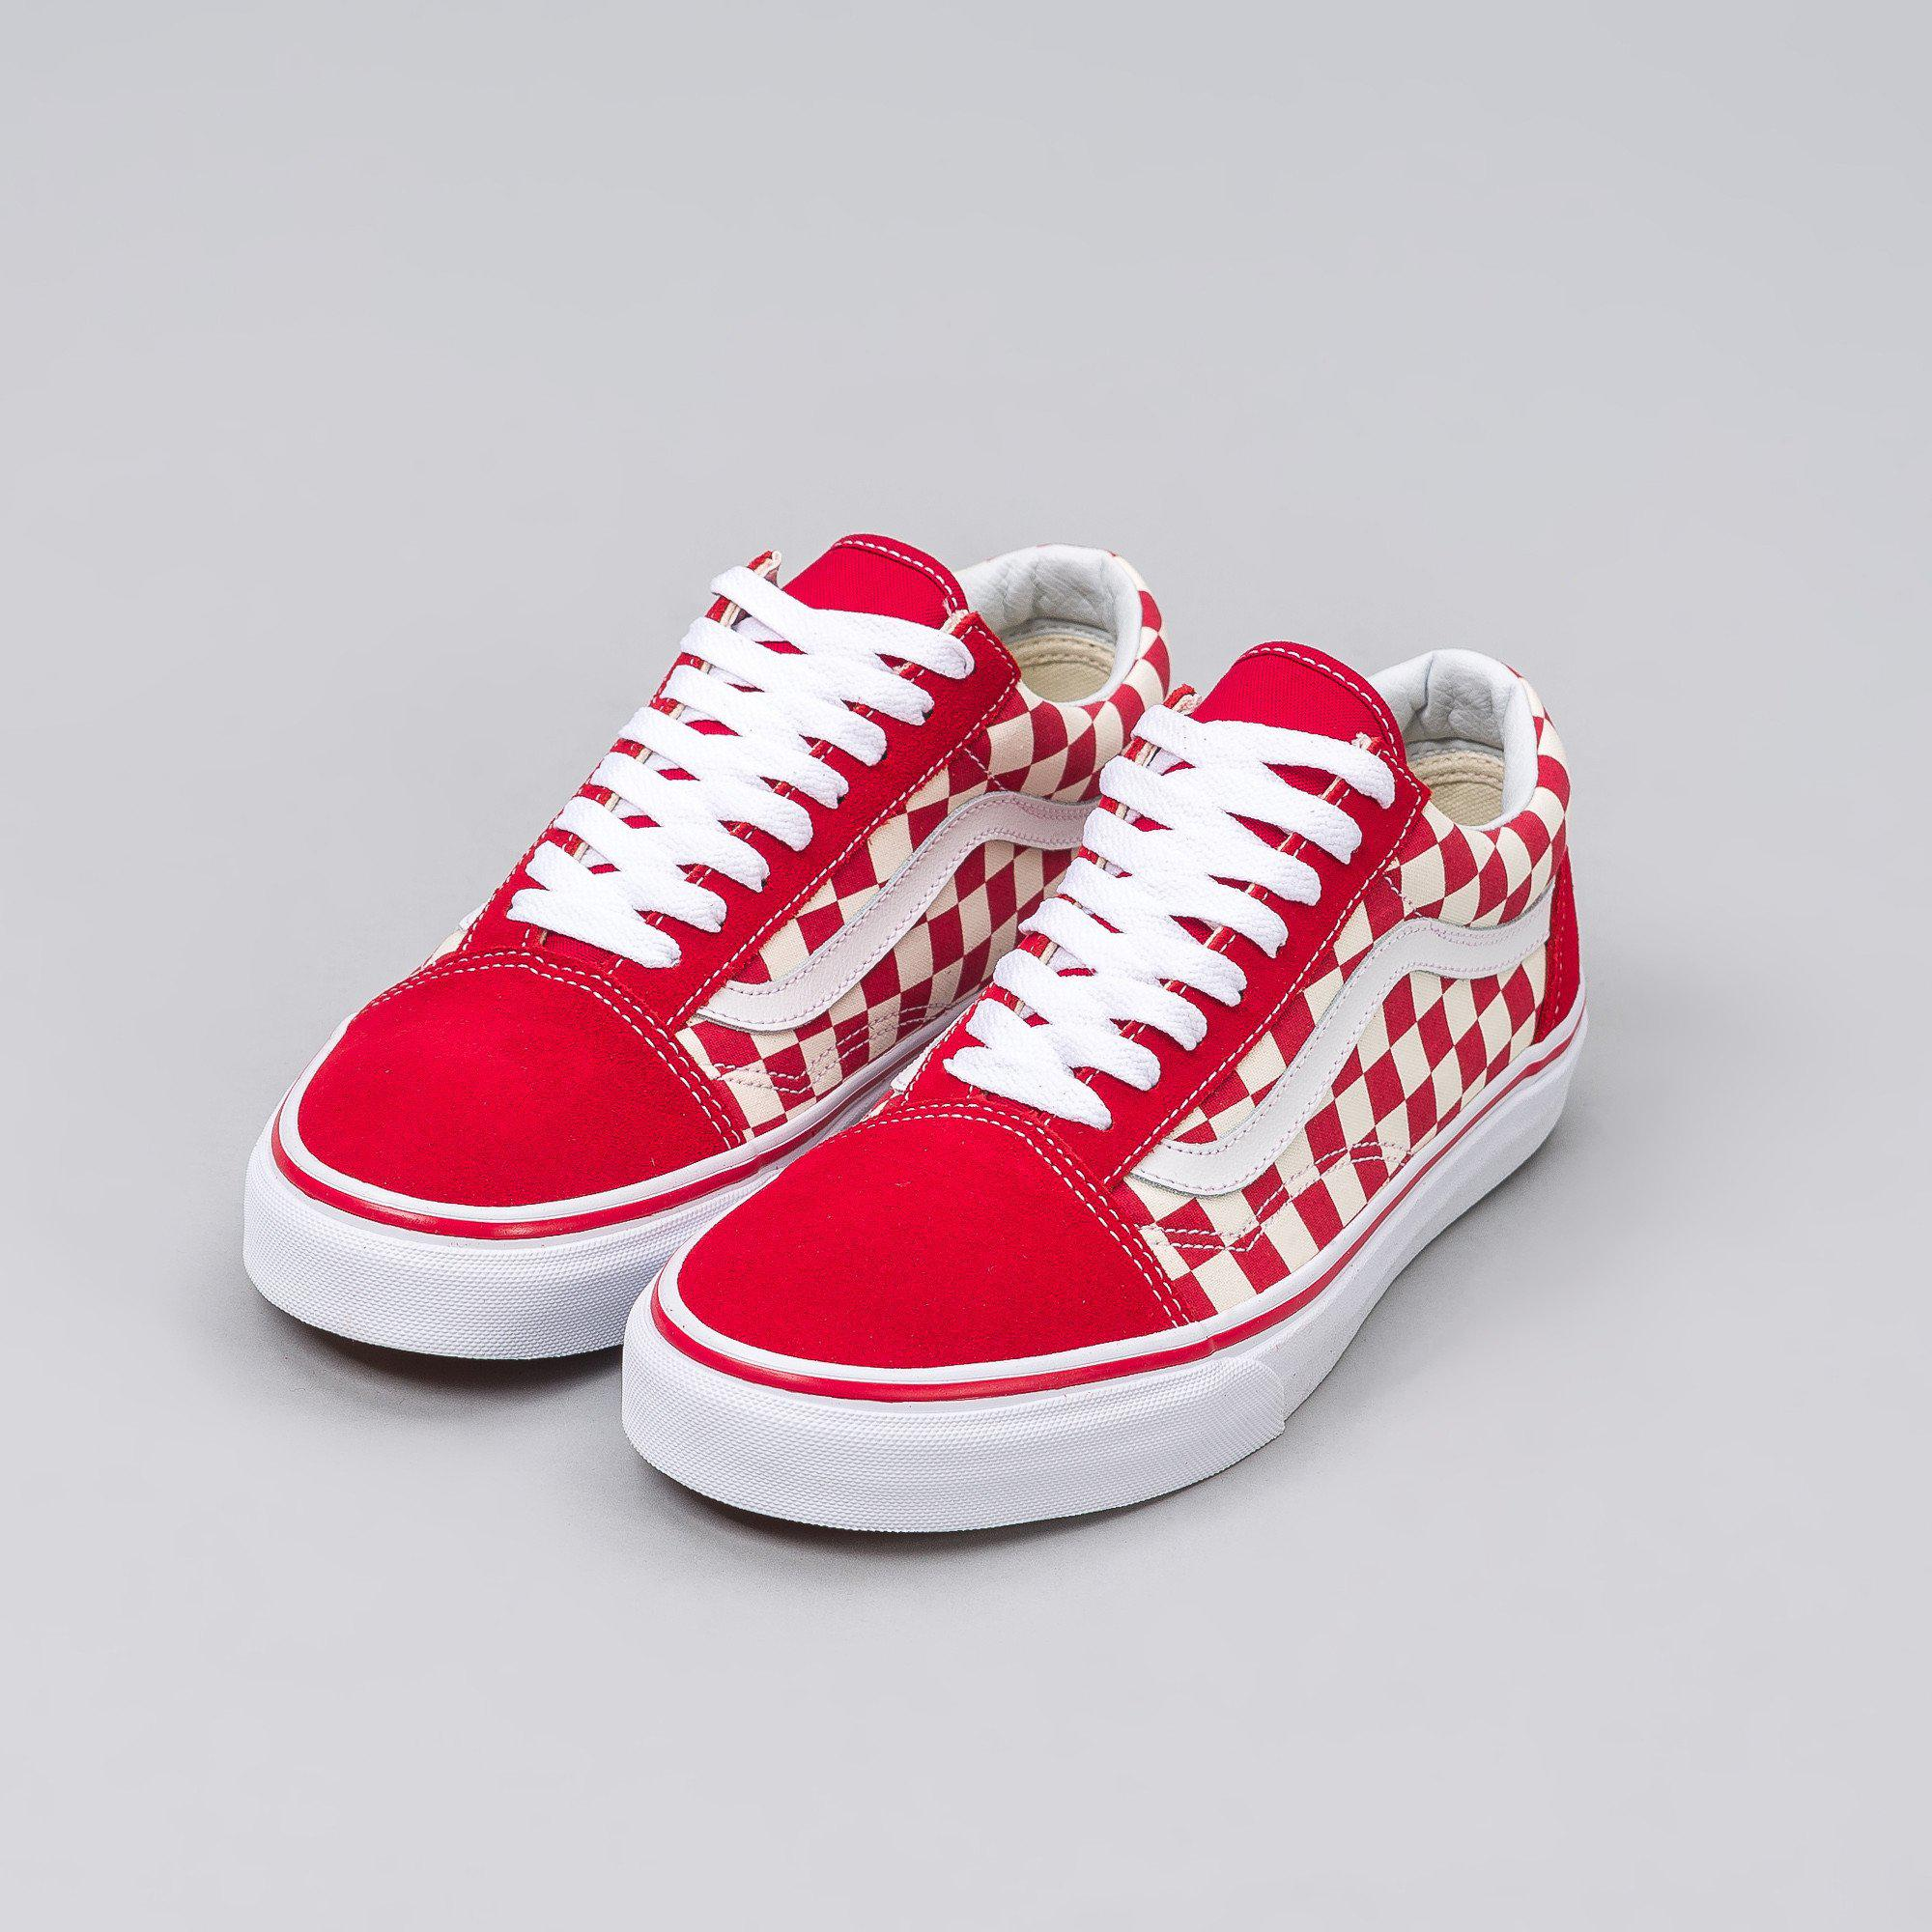 e7e6fdee1aebf0 Lyst - Vans Old Skool Checkerboard In Red white in Red for Men